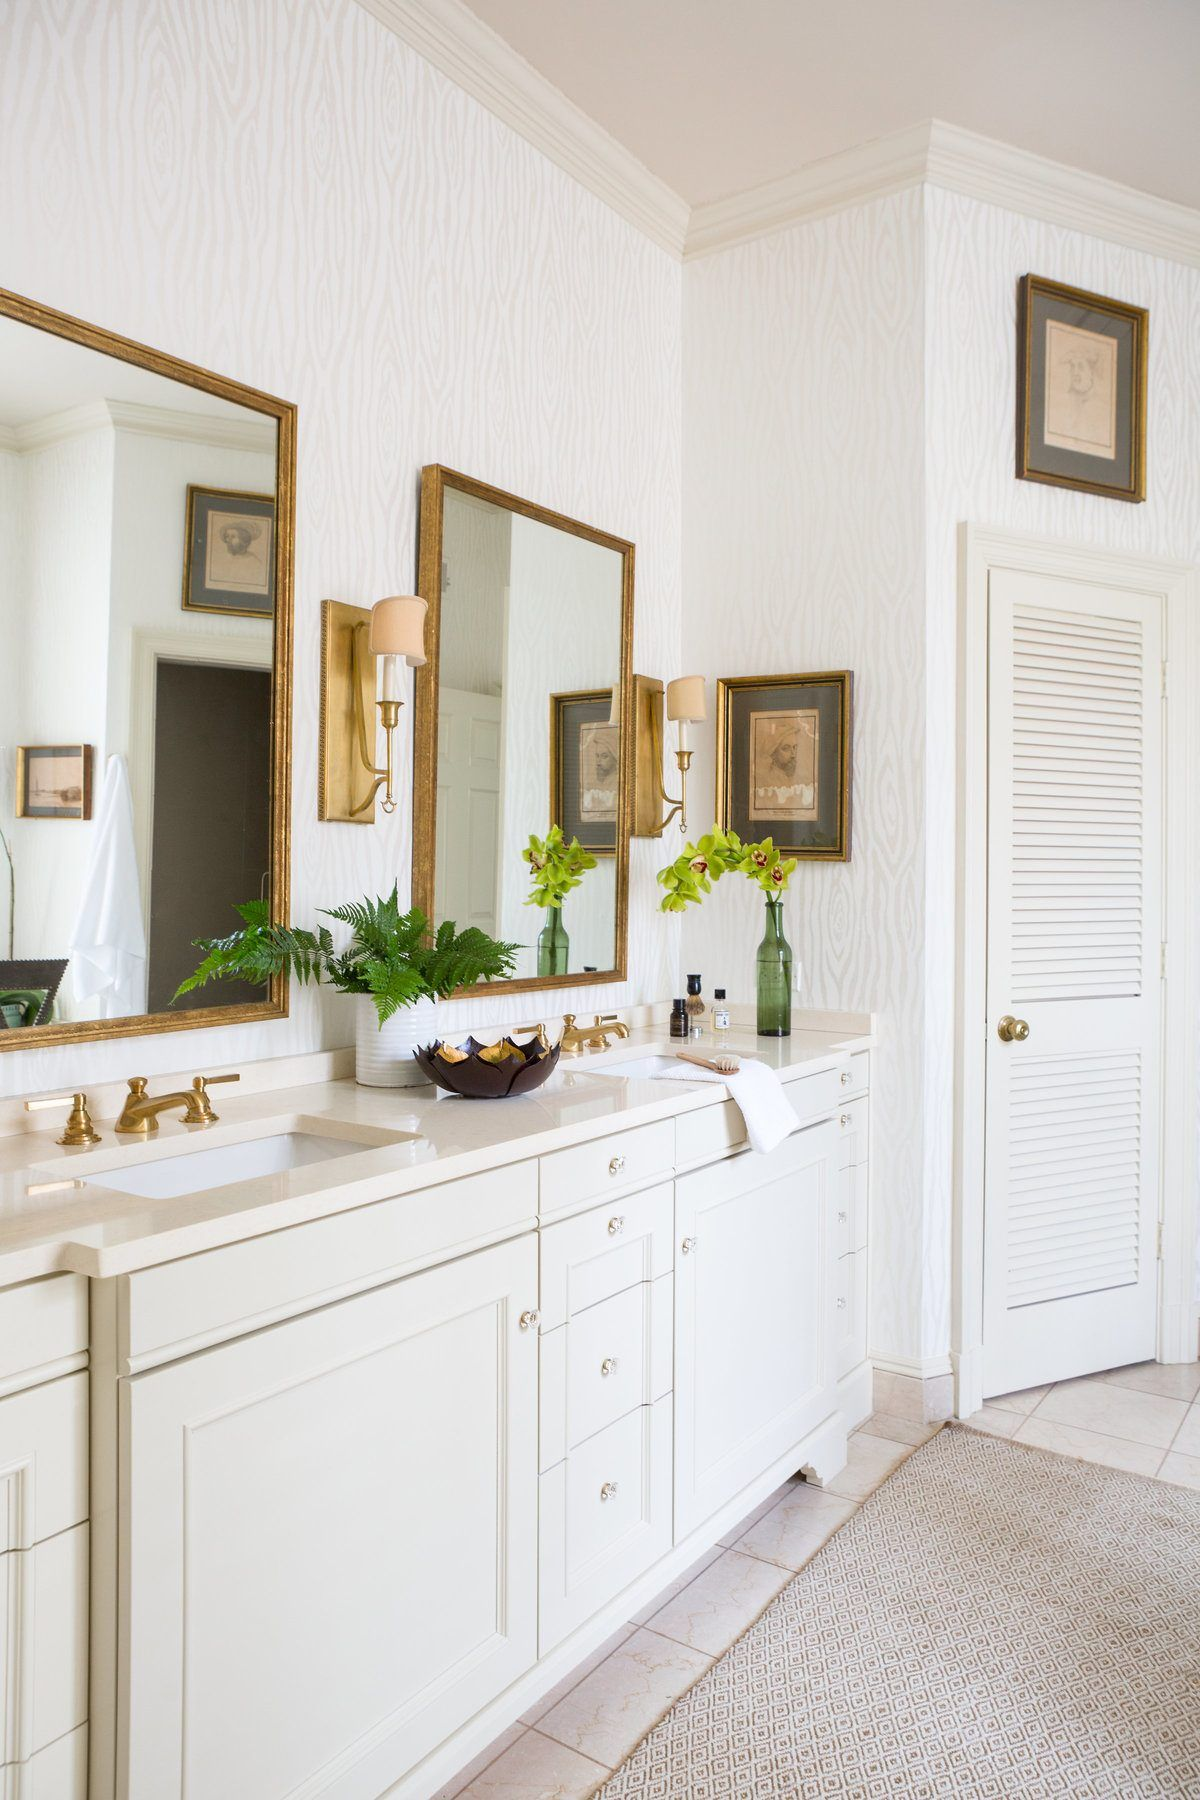 13 Must-See Memphis Master Baths (With images) | Bathroom ...